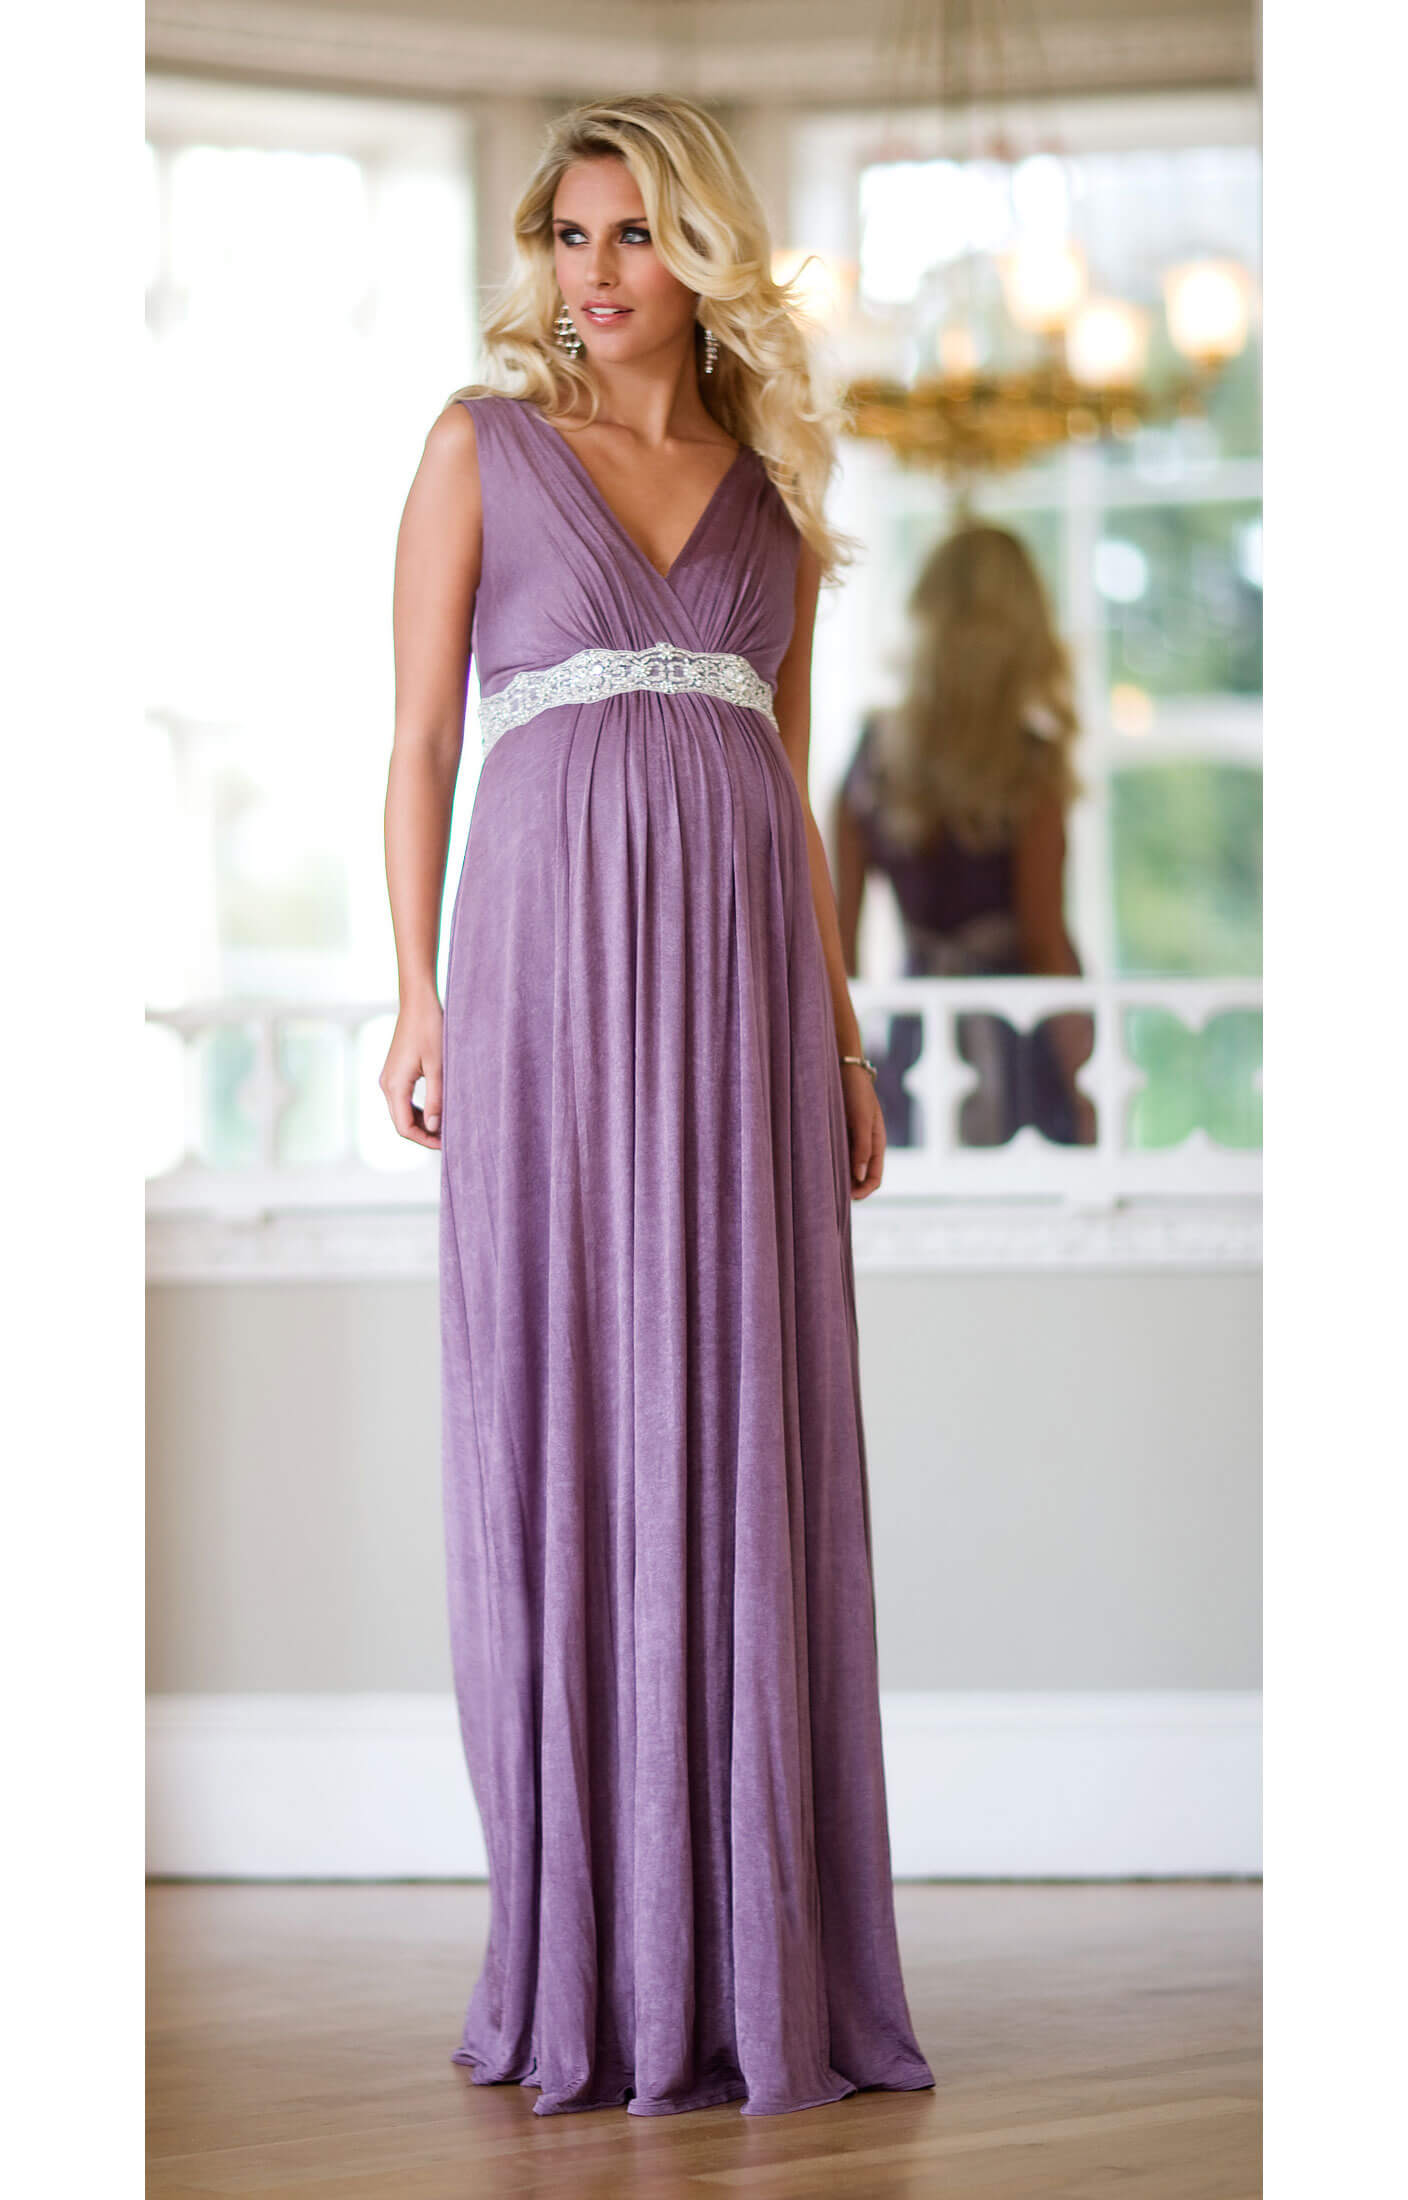 Anastasia Maternity Gown (Heather) with Diamante Sash - Maternity ...